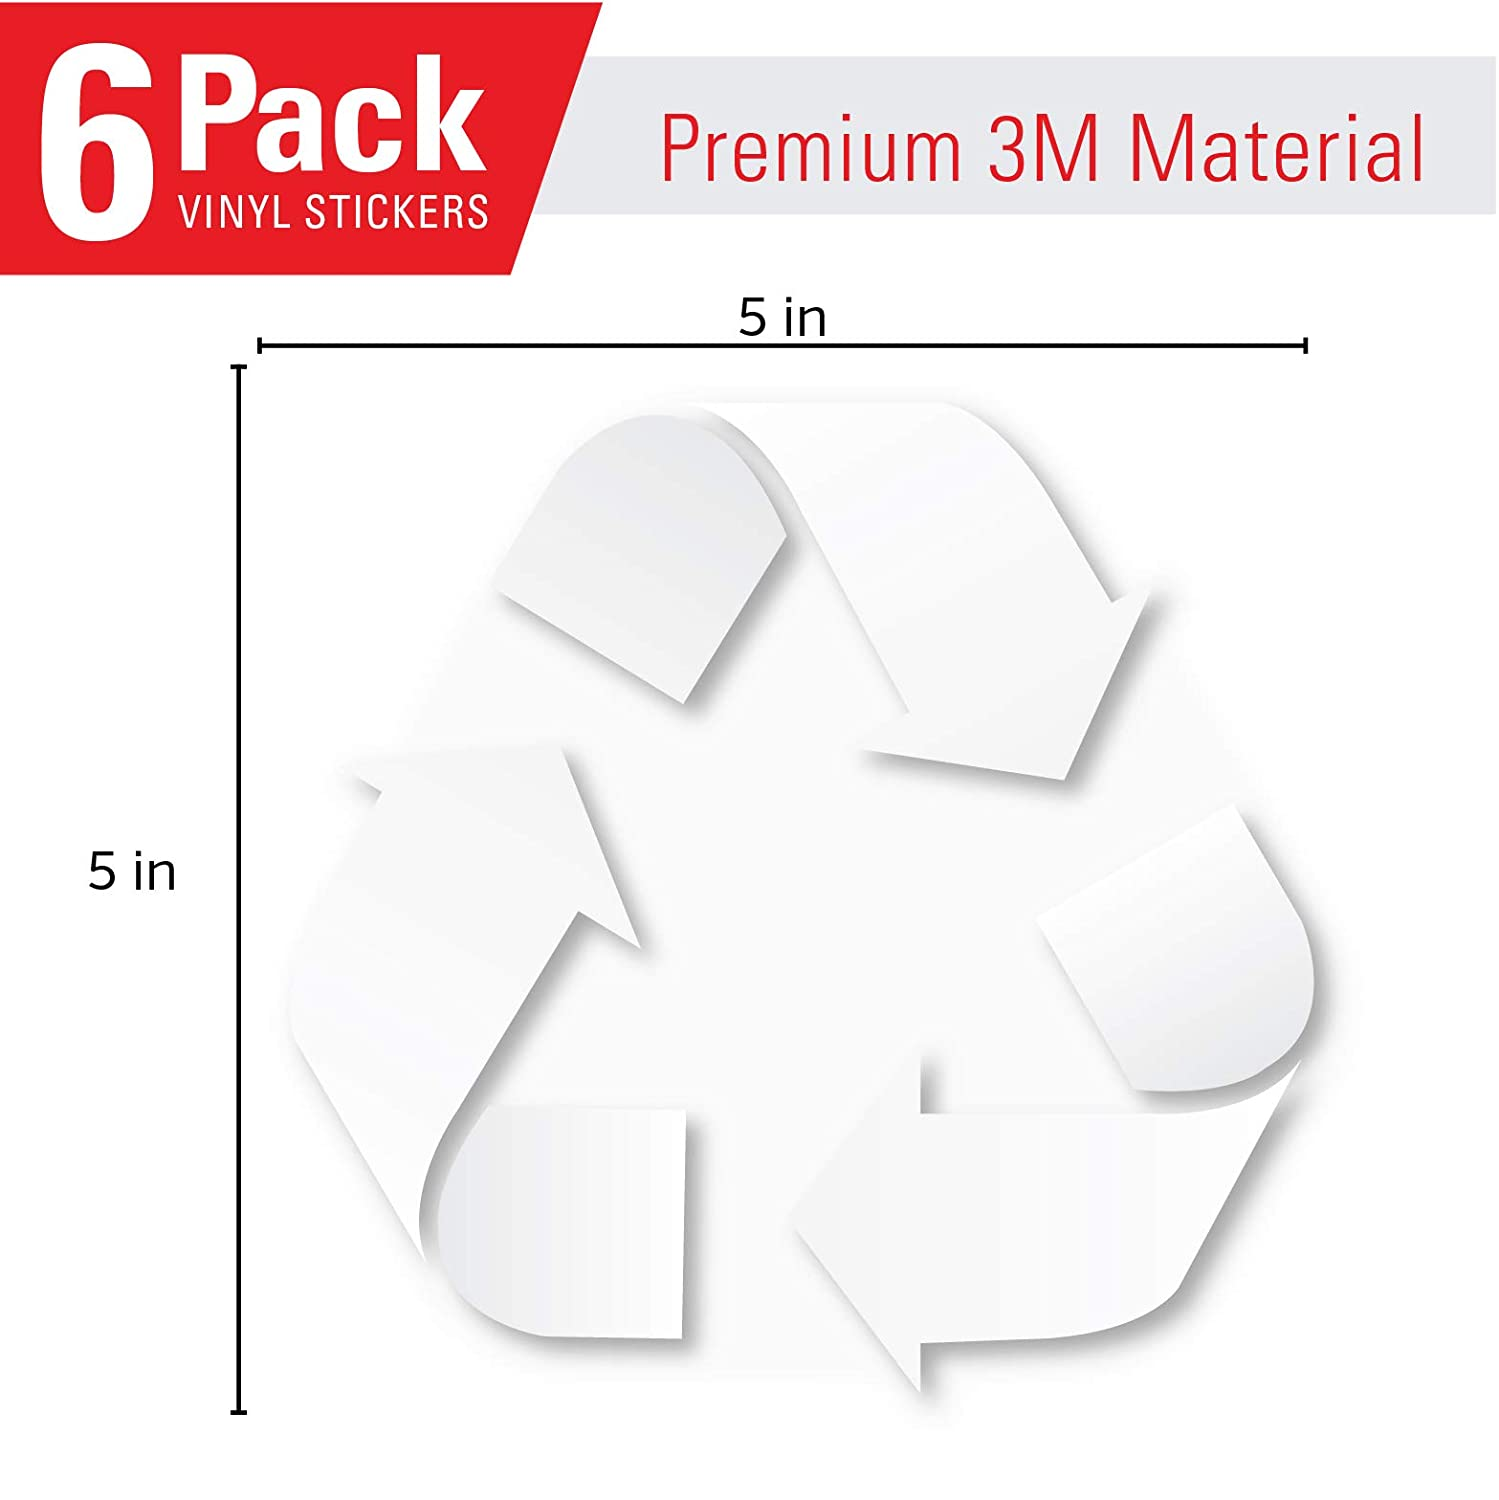 6 Pack Laminated Garbage containers and Recycle Bins 7 Mil for Trash cans Premium Vinyl Decal 5in x 5in Blue//White Recycle Logo Sticker to Organize Your Trash